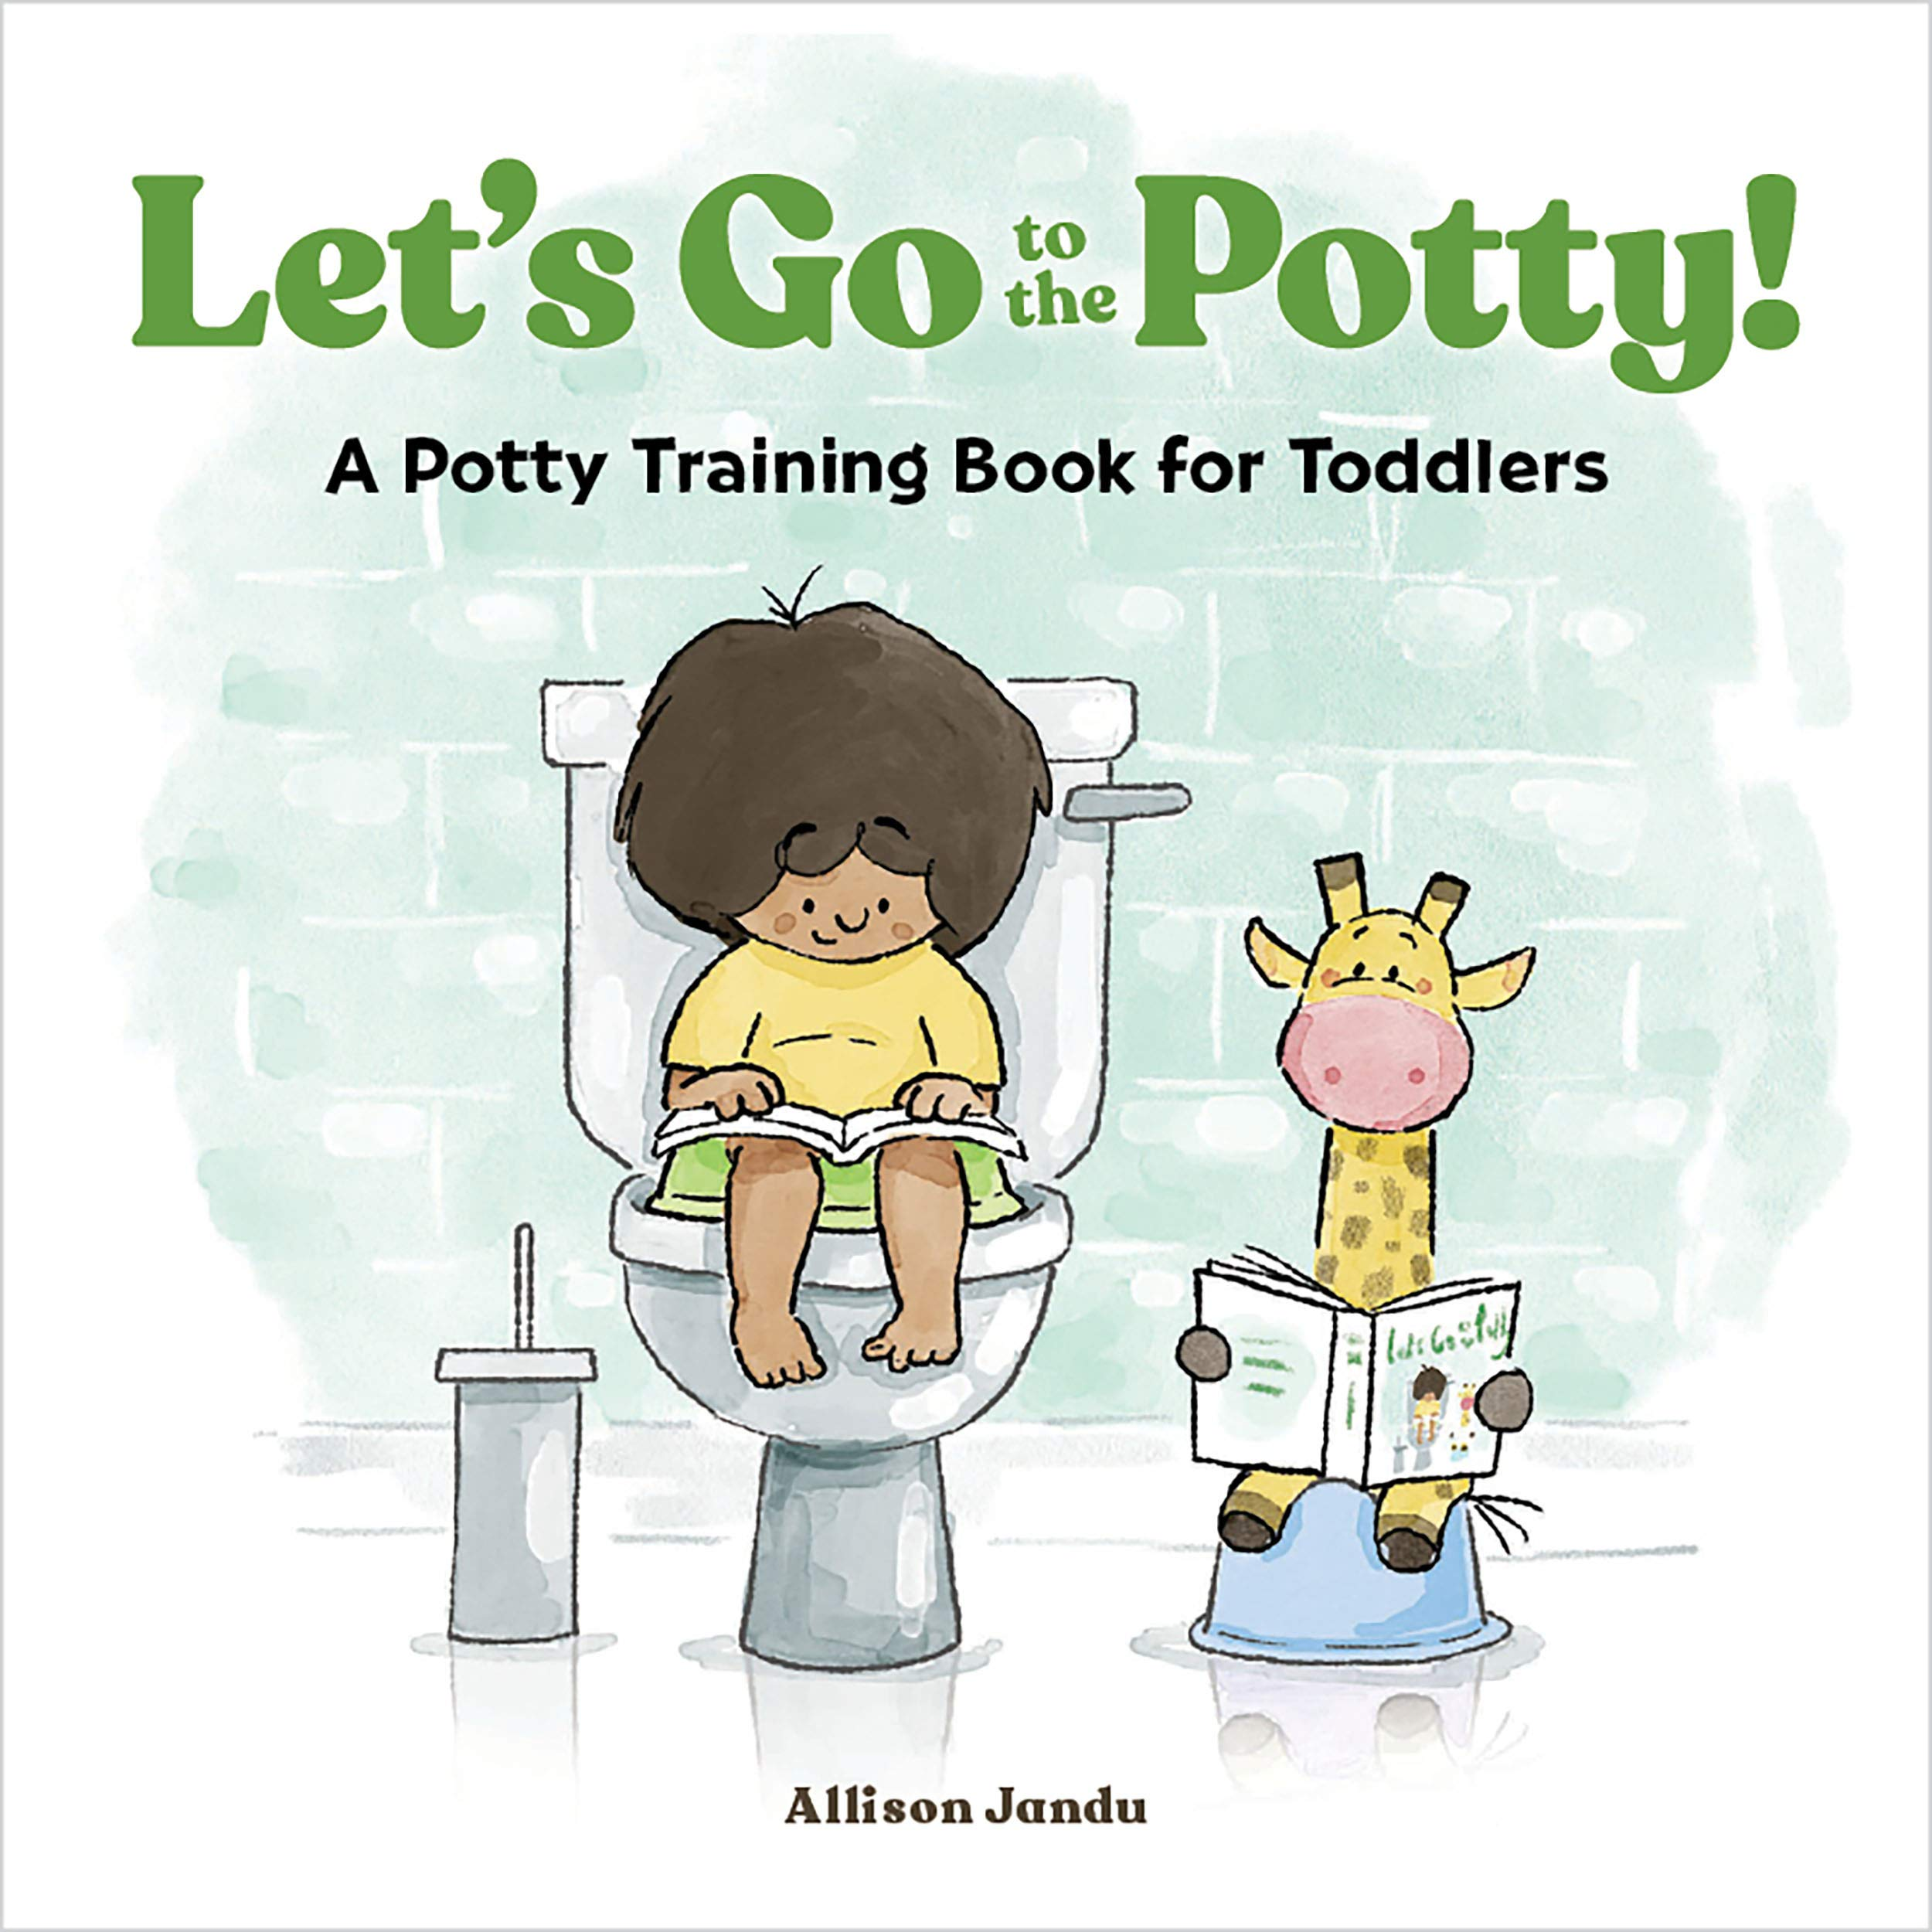 Let's Go to the Potty!: A Potty Training Book for Toddlers: Jandu, Allison:  9781646119936: Books - Amazon.ca